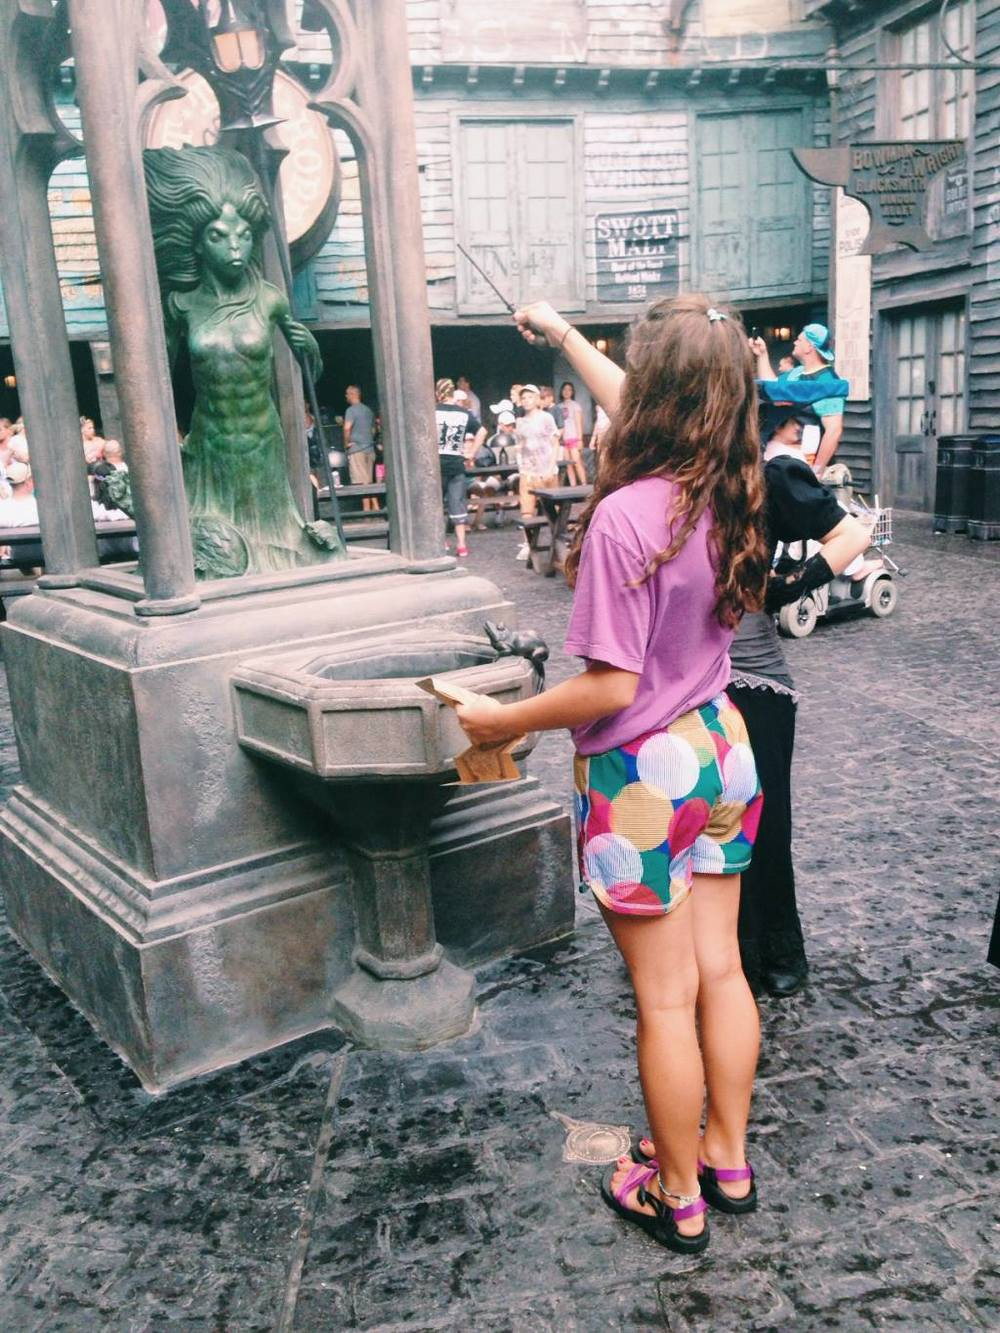 My niece casting spells all around Diagon Alley with her wand. It really works! Brilliant!